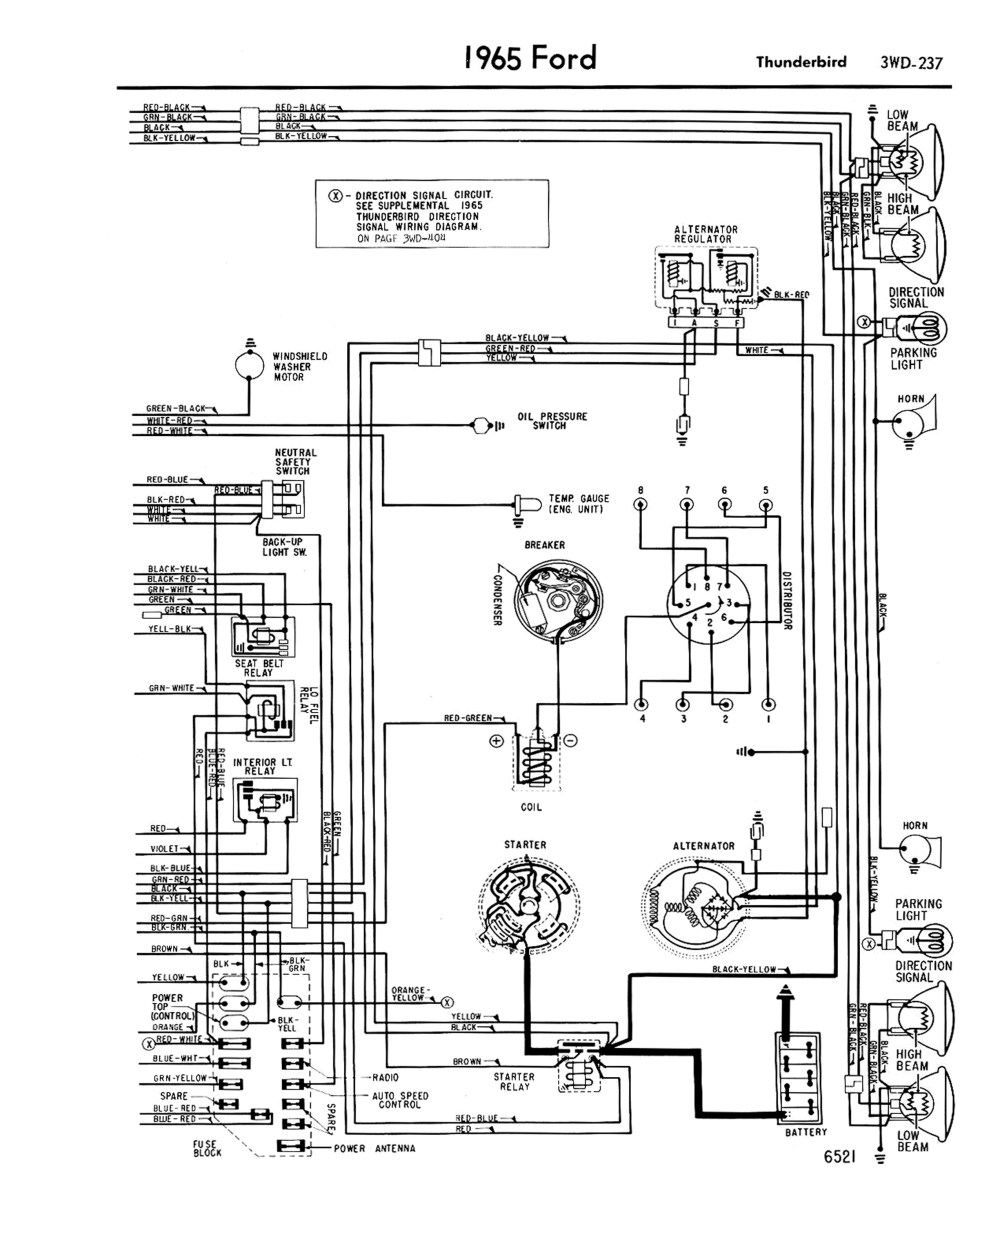 medium resolution of 1955 ford turn signal wiring diagram wiring diagrams img cj5 turn signal wiring diagram 1956 ford turn signal wiring diagram